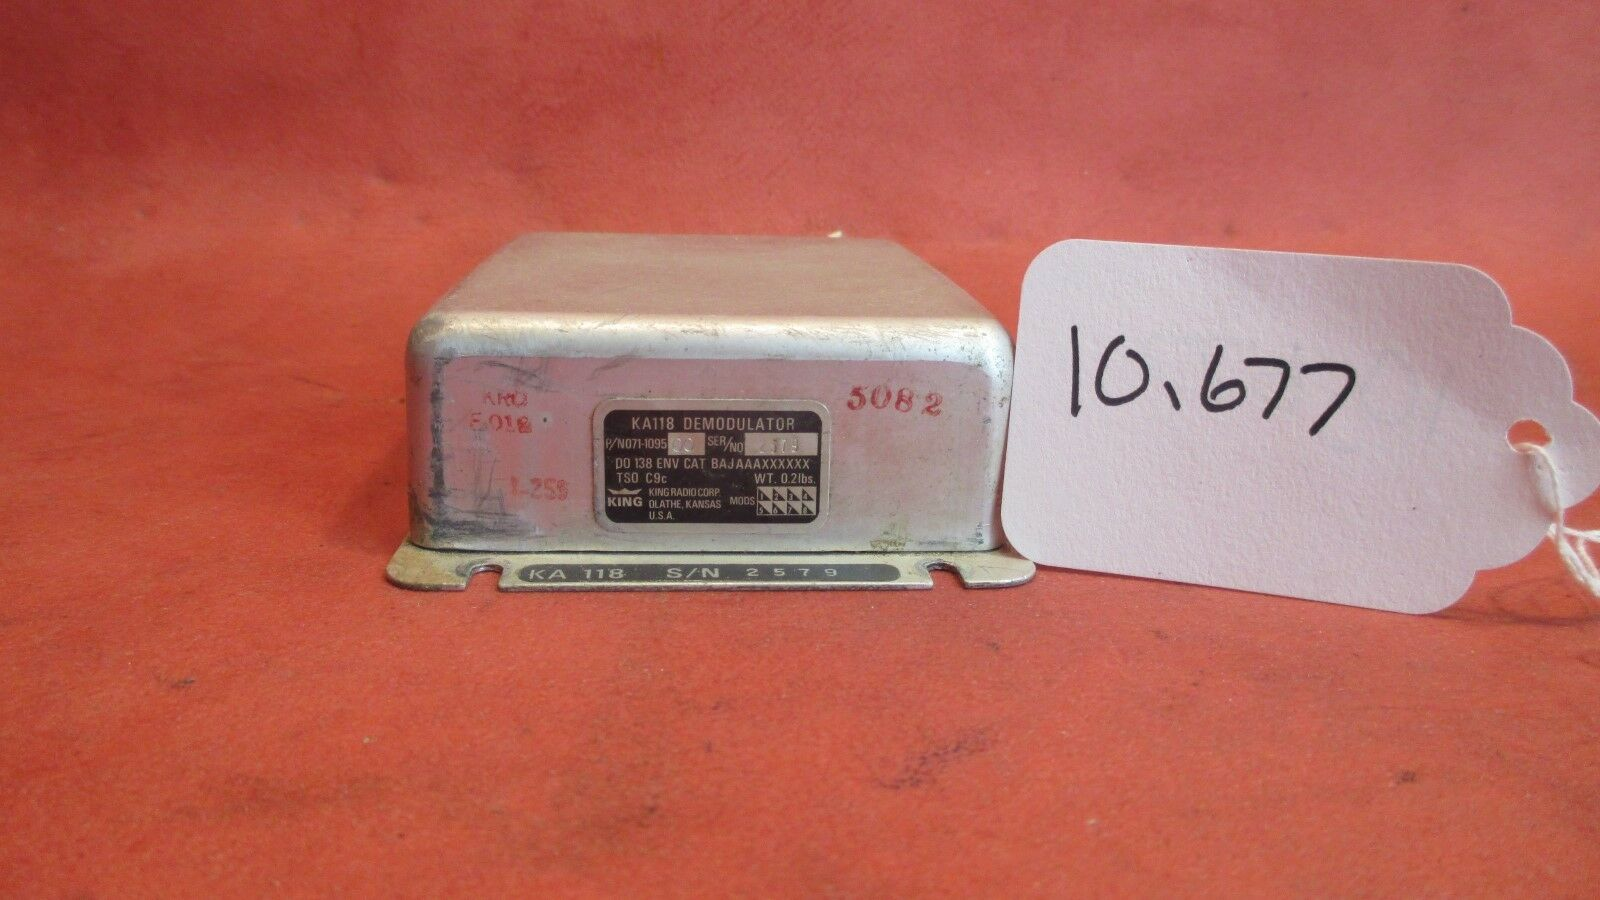 King KA118 Demodulator PN 071-1095-00